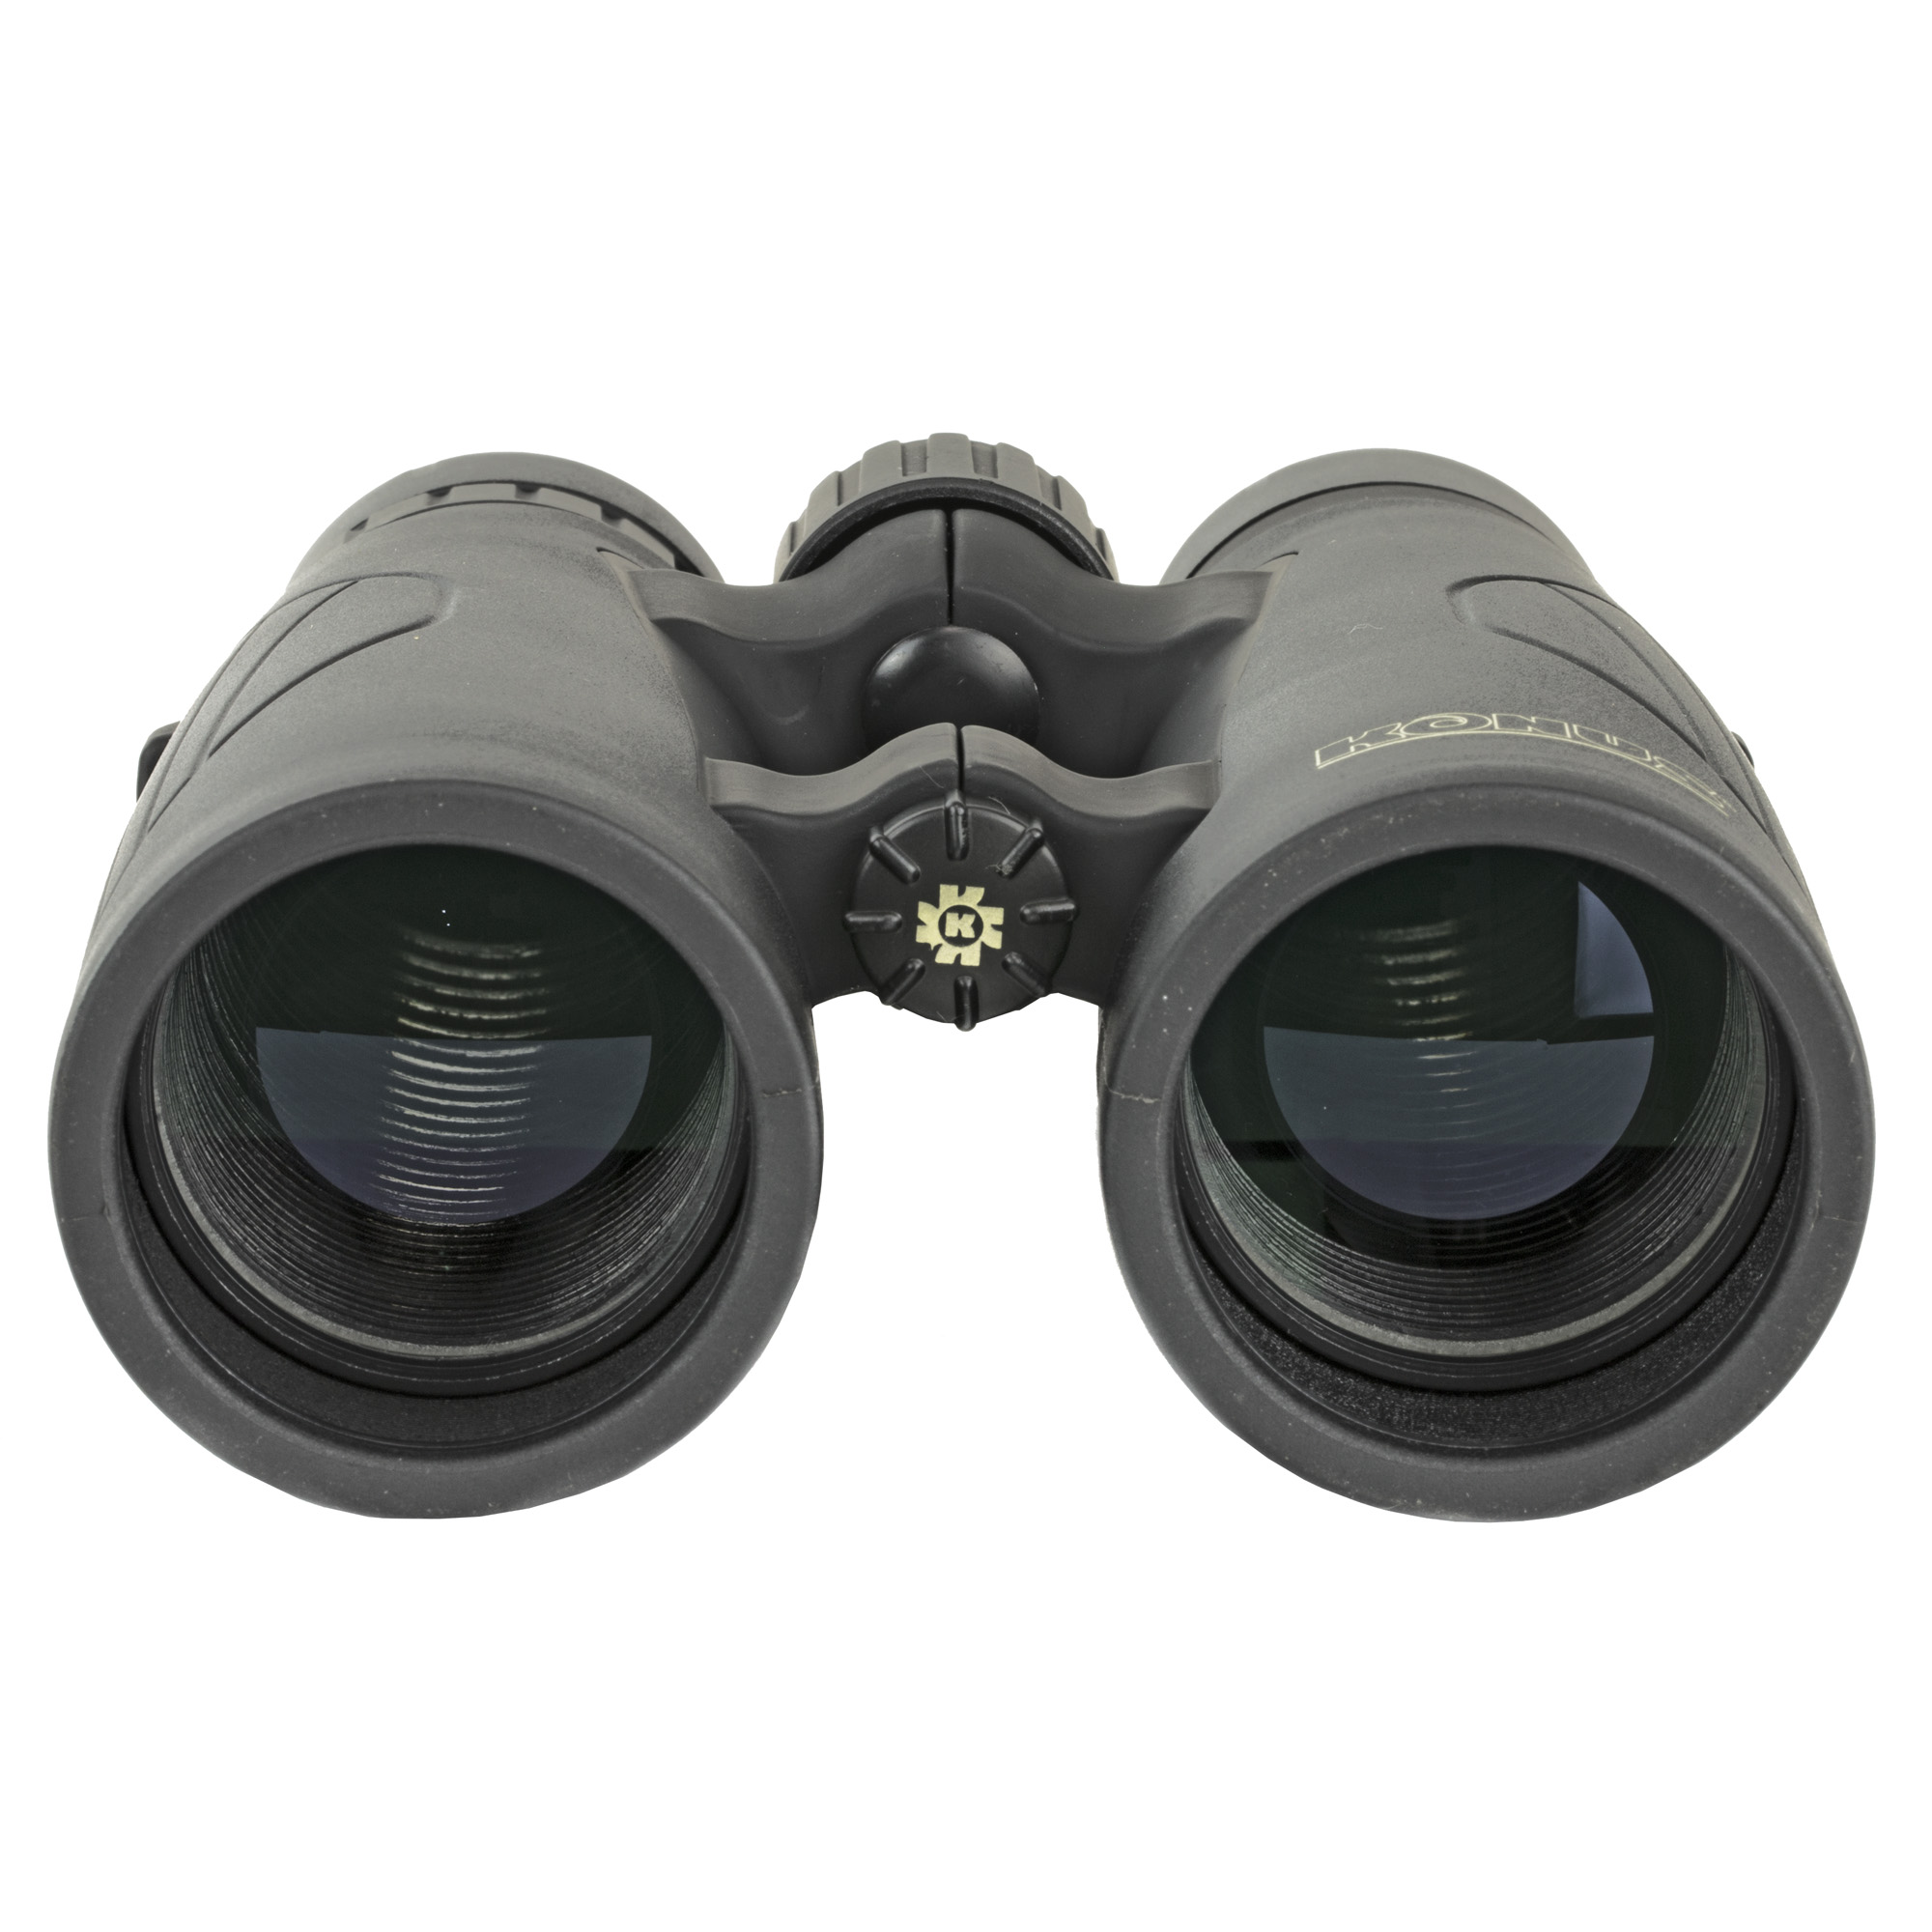 "Highly touted by the most demanding customers due to their spectacular optical quality"" the Titanium binoculars are now better looking than ever. Konus' newest 10x42 model features a modern and sleek open hinge design that enhances their appearance while maximizing their portability."